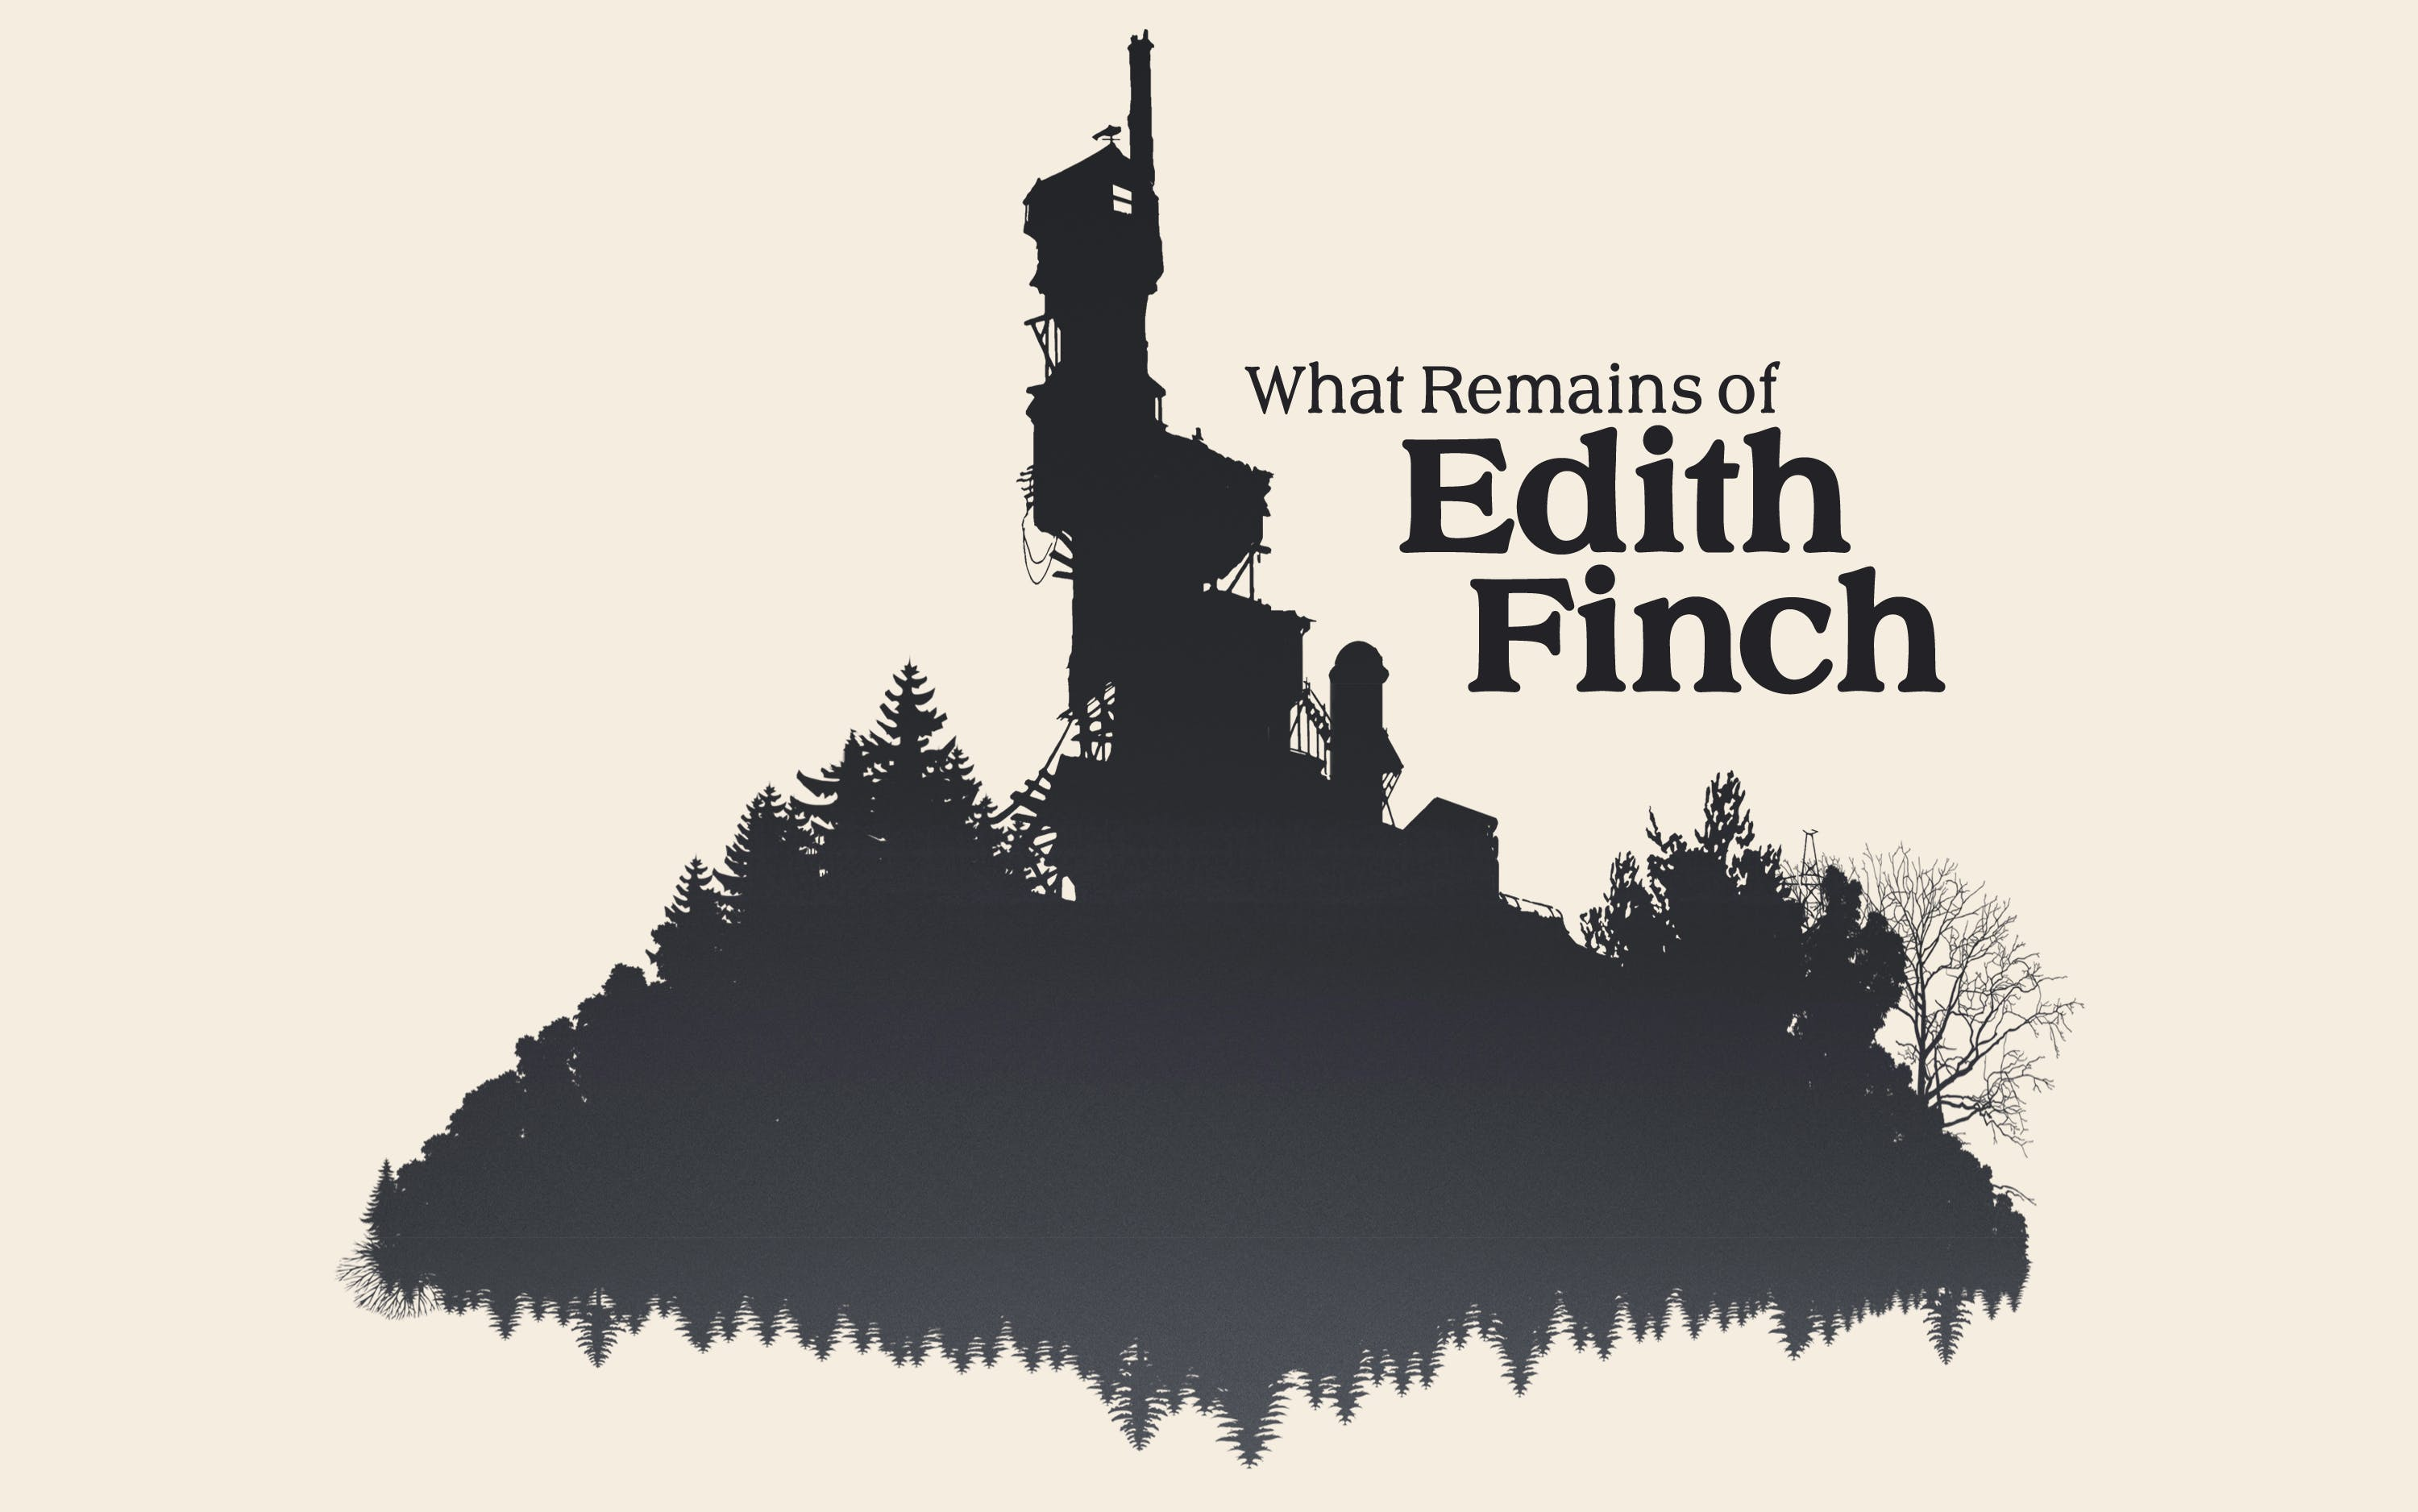 best video games 2017 : What Remains of Edith Finch